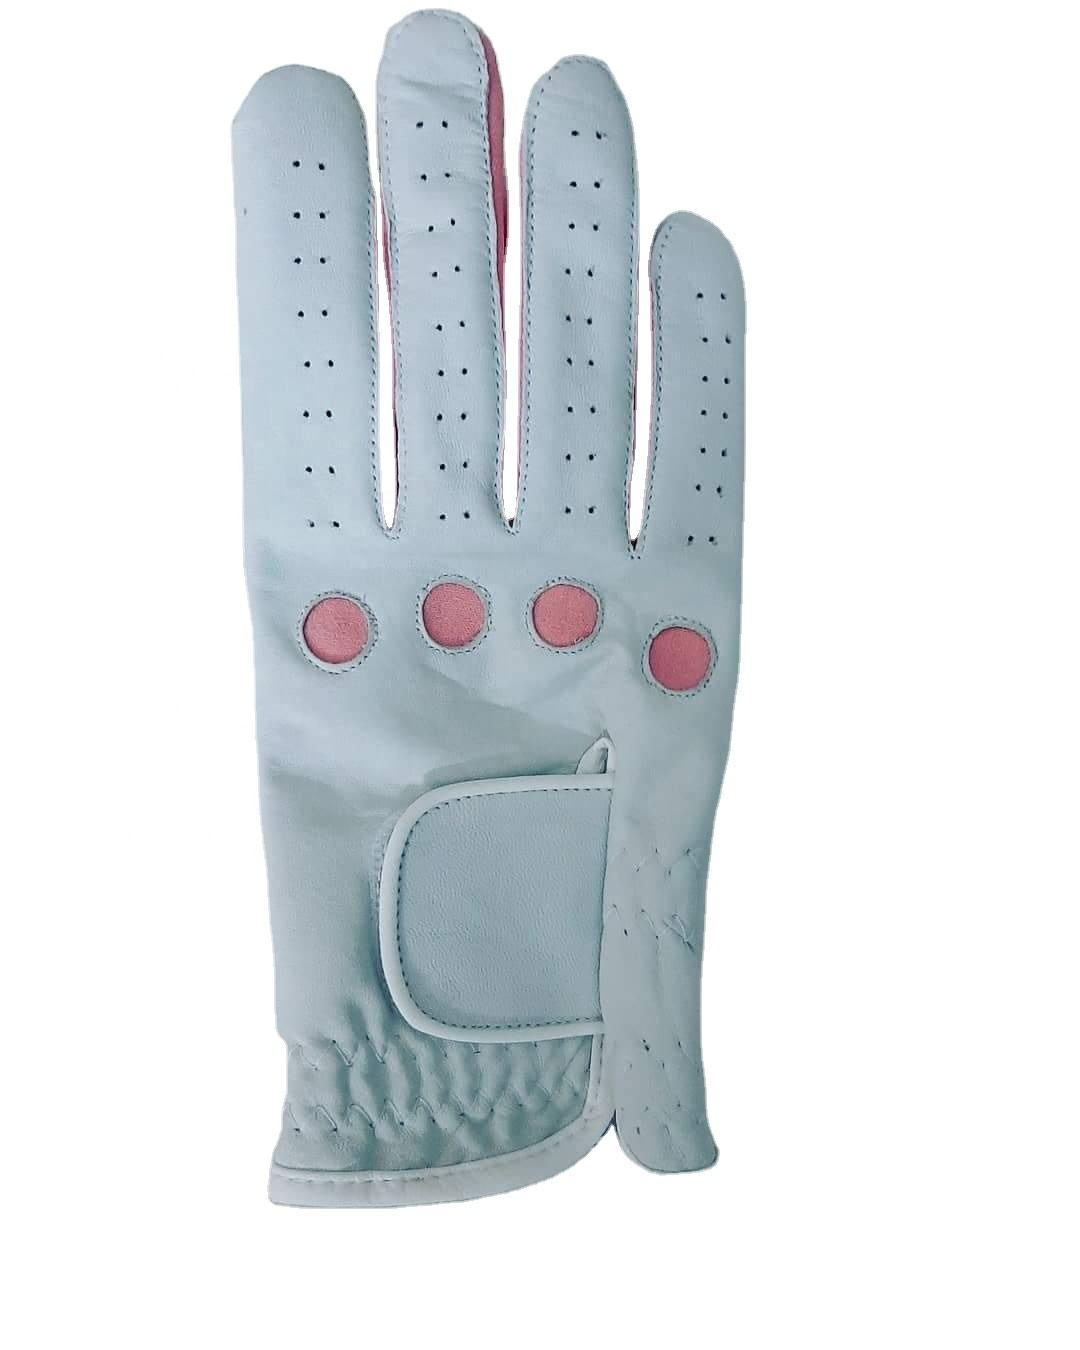 Soft golf glove in sheep leather with different material, colors, designs available in SFJ